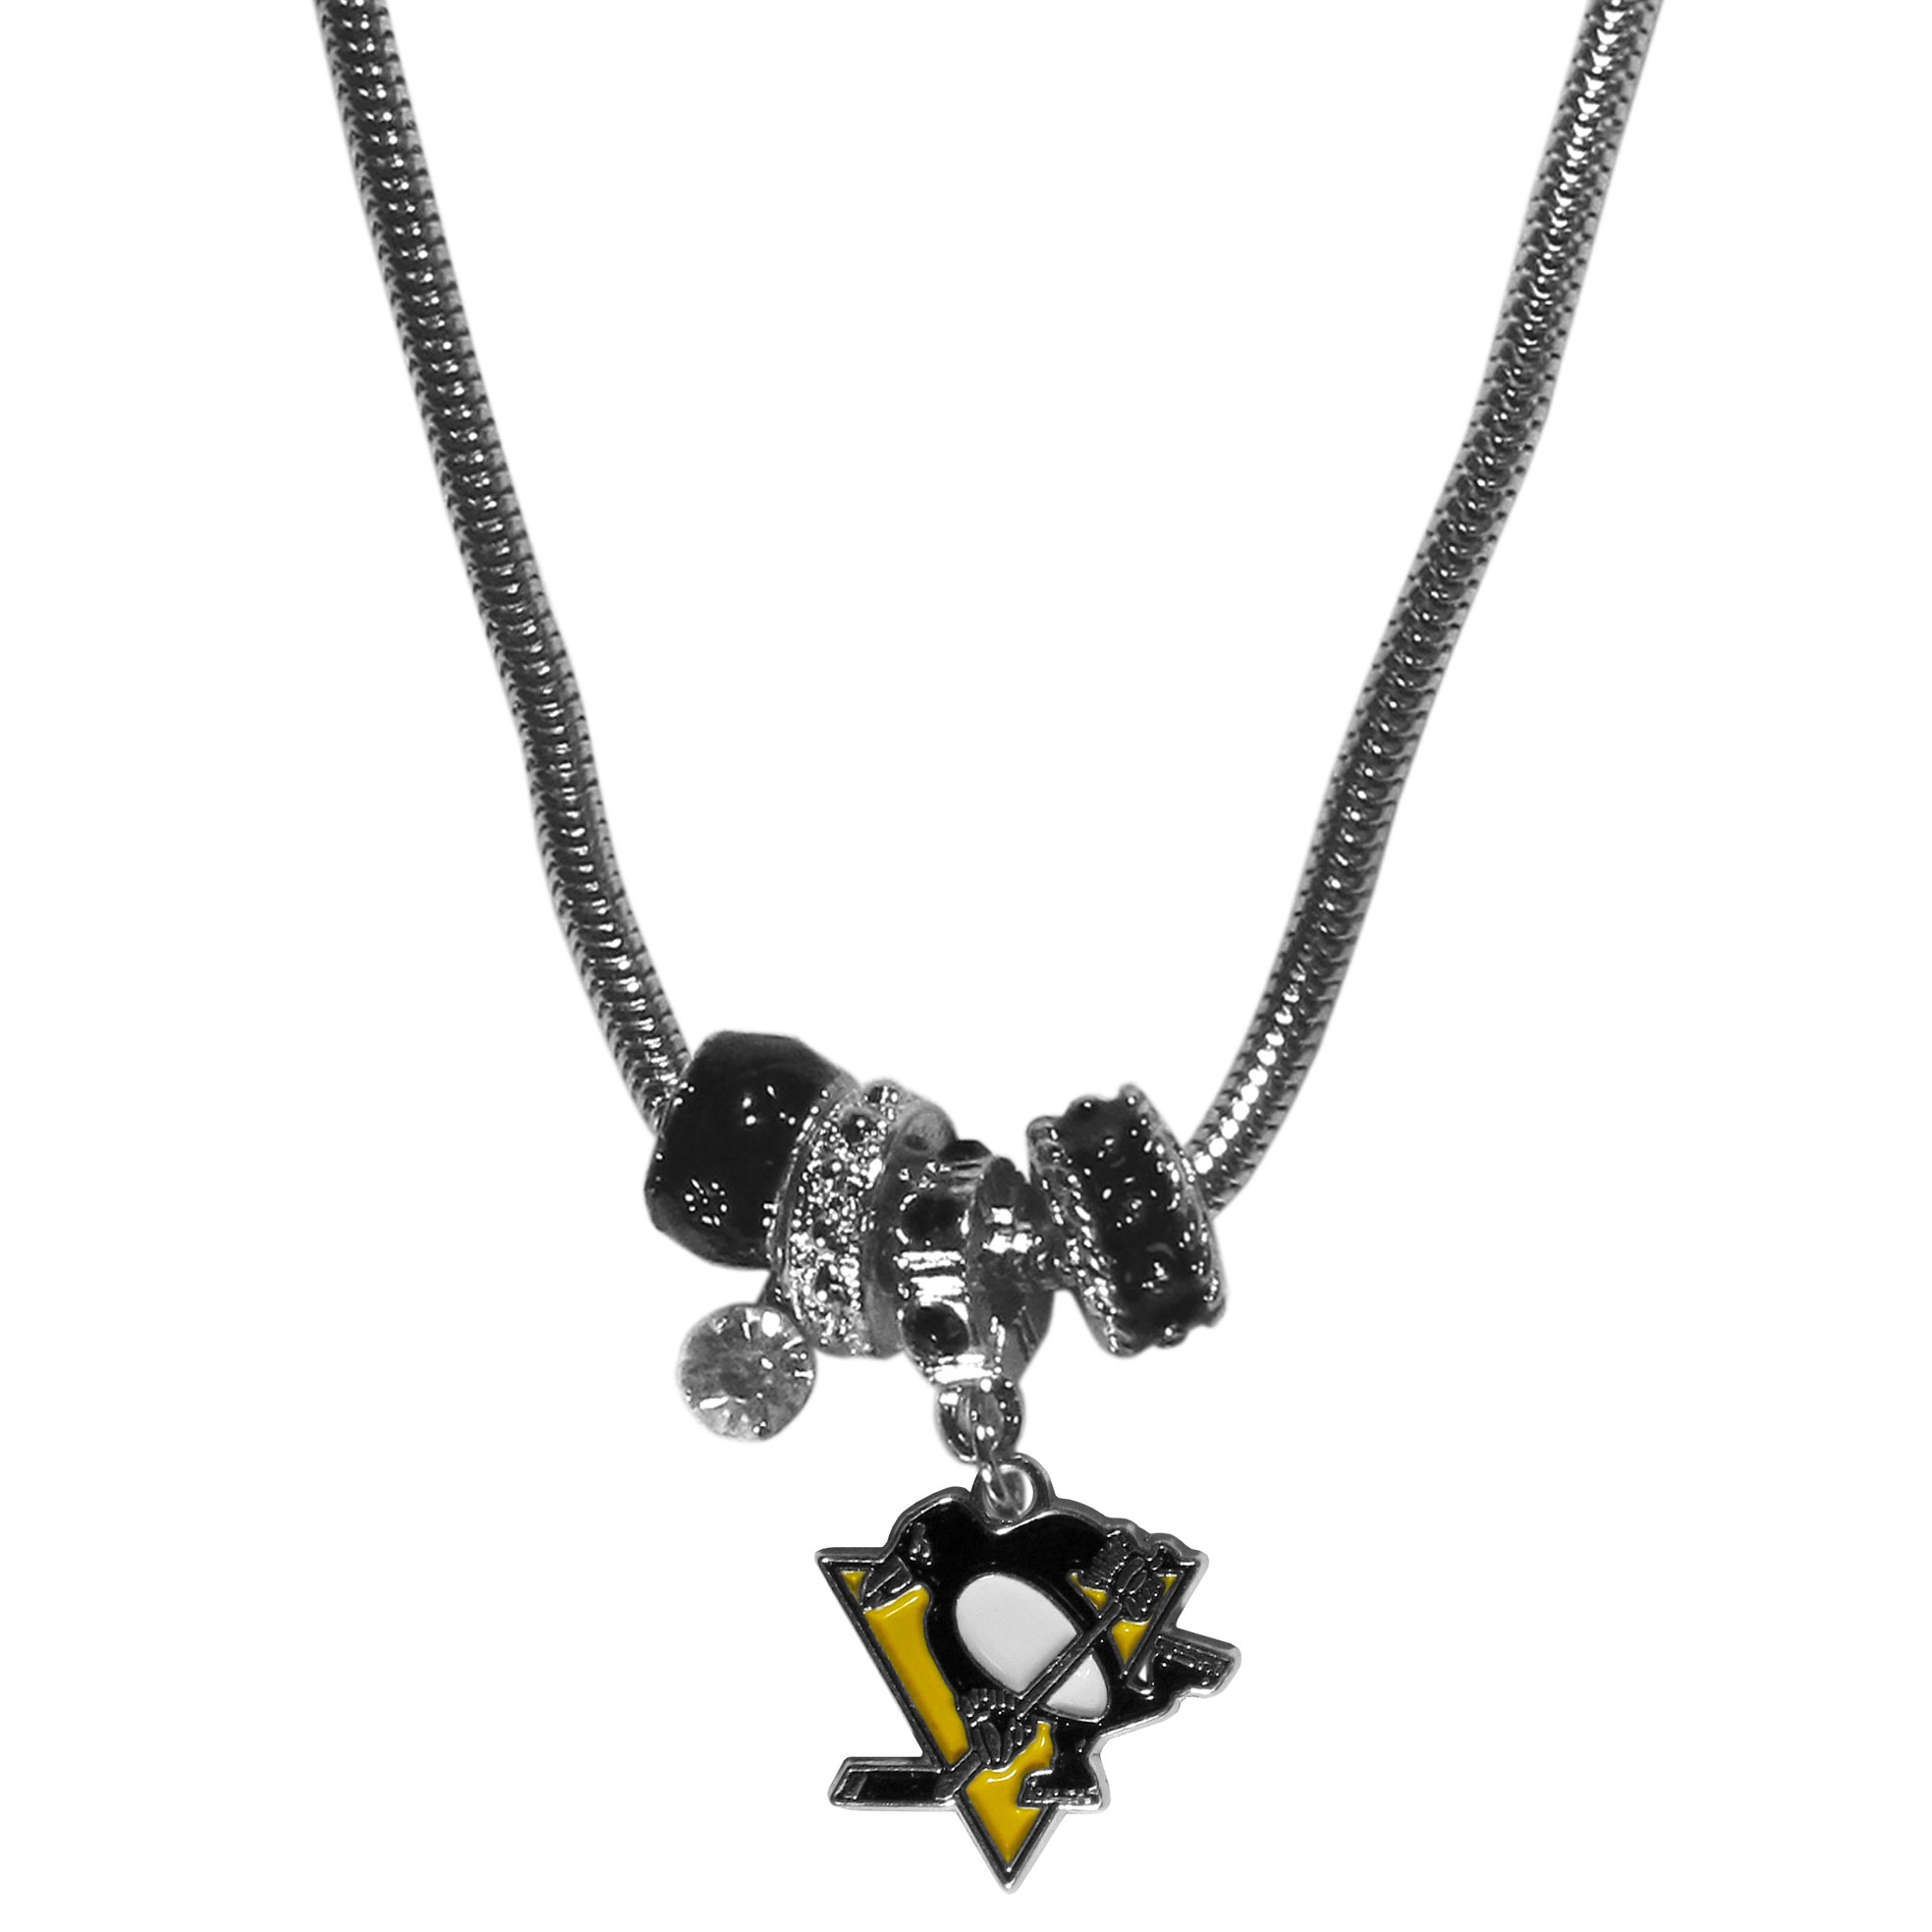 Pittsburgh Penguins Euro Bead Necklace - We have combined the wildly popular Euro style beads with your favorite team to create our Pittsburgh Penguins euro bead necklace. The 18 inch snake chain features 4 Euro beads with enameled Pittsburgh Penguins colors and rhinestone accents with a high polish, nickel free charm and rhinestone charm. Perfect way to show off your Pittsburgh Penguins pride.